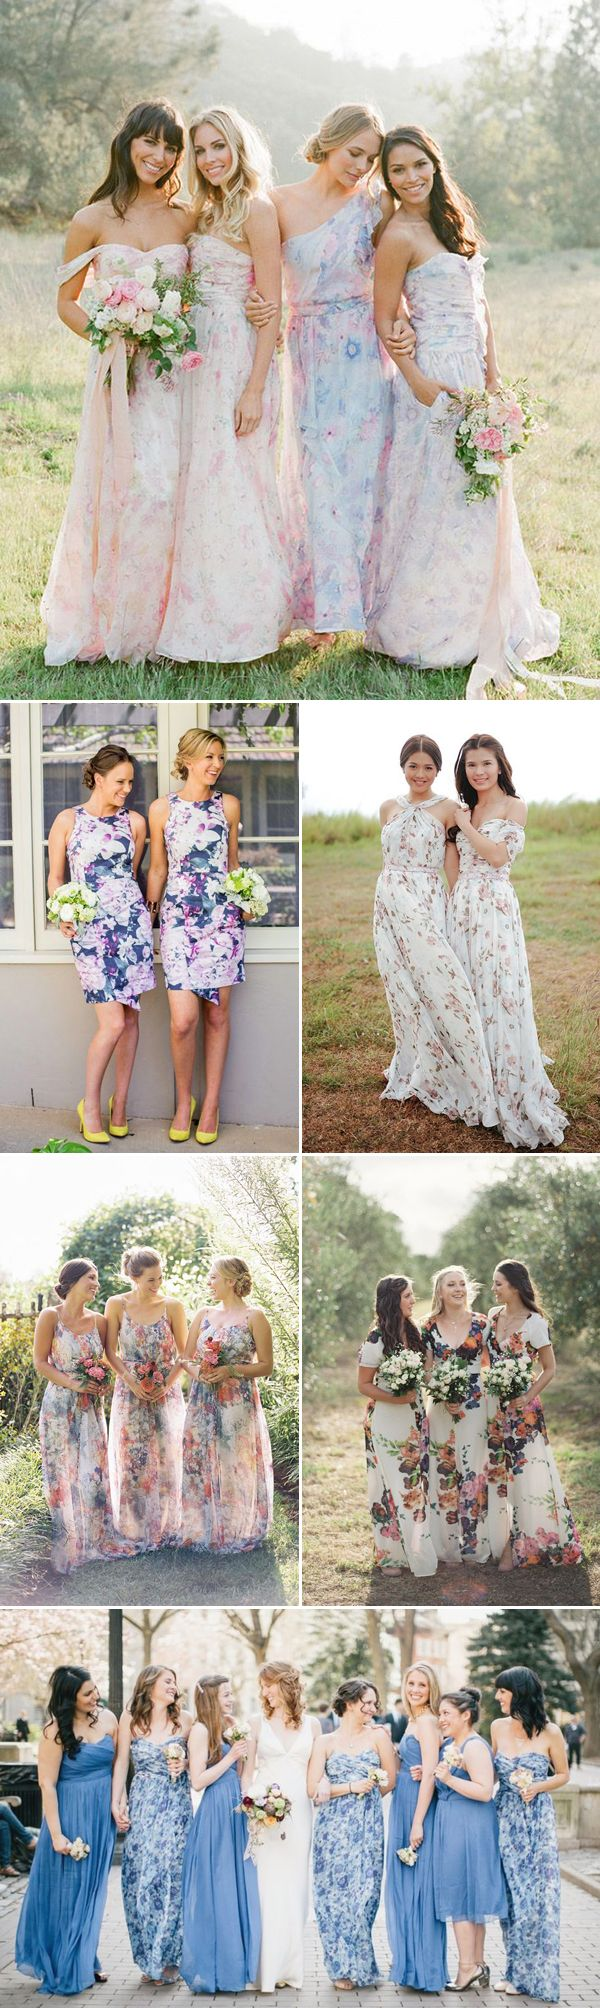 Best 25 floral bridesmaid dresses ideas on pinterest floral top 5 bridesmaid dress trends this spring ombrellifo Images